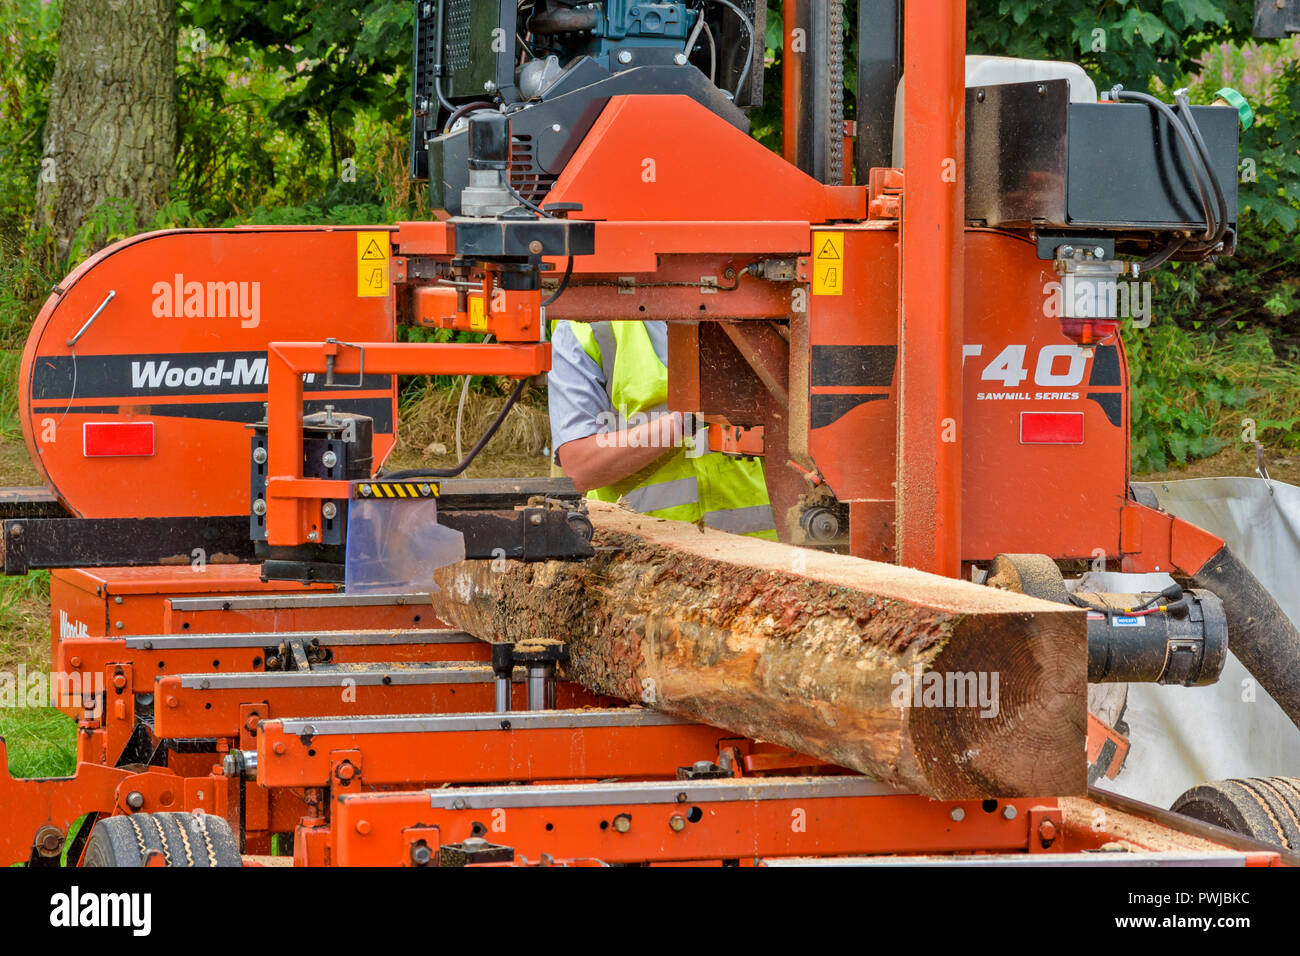 WOOD MIZER A TRANSPORTABLE SAWMILL IN ACTION SAWING A LOG OF